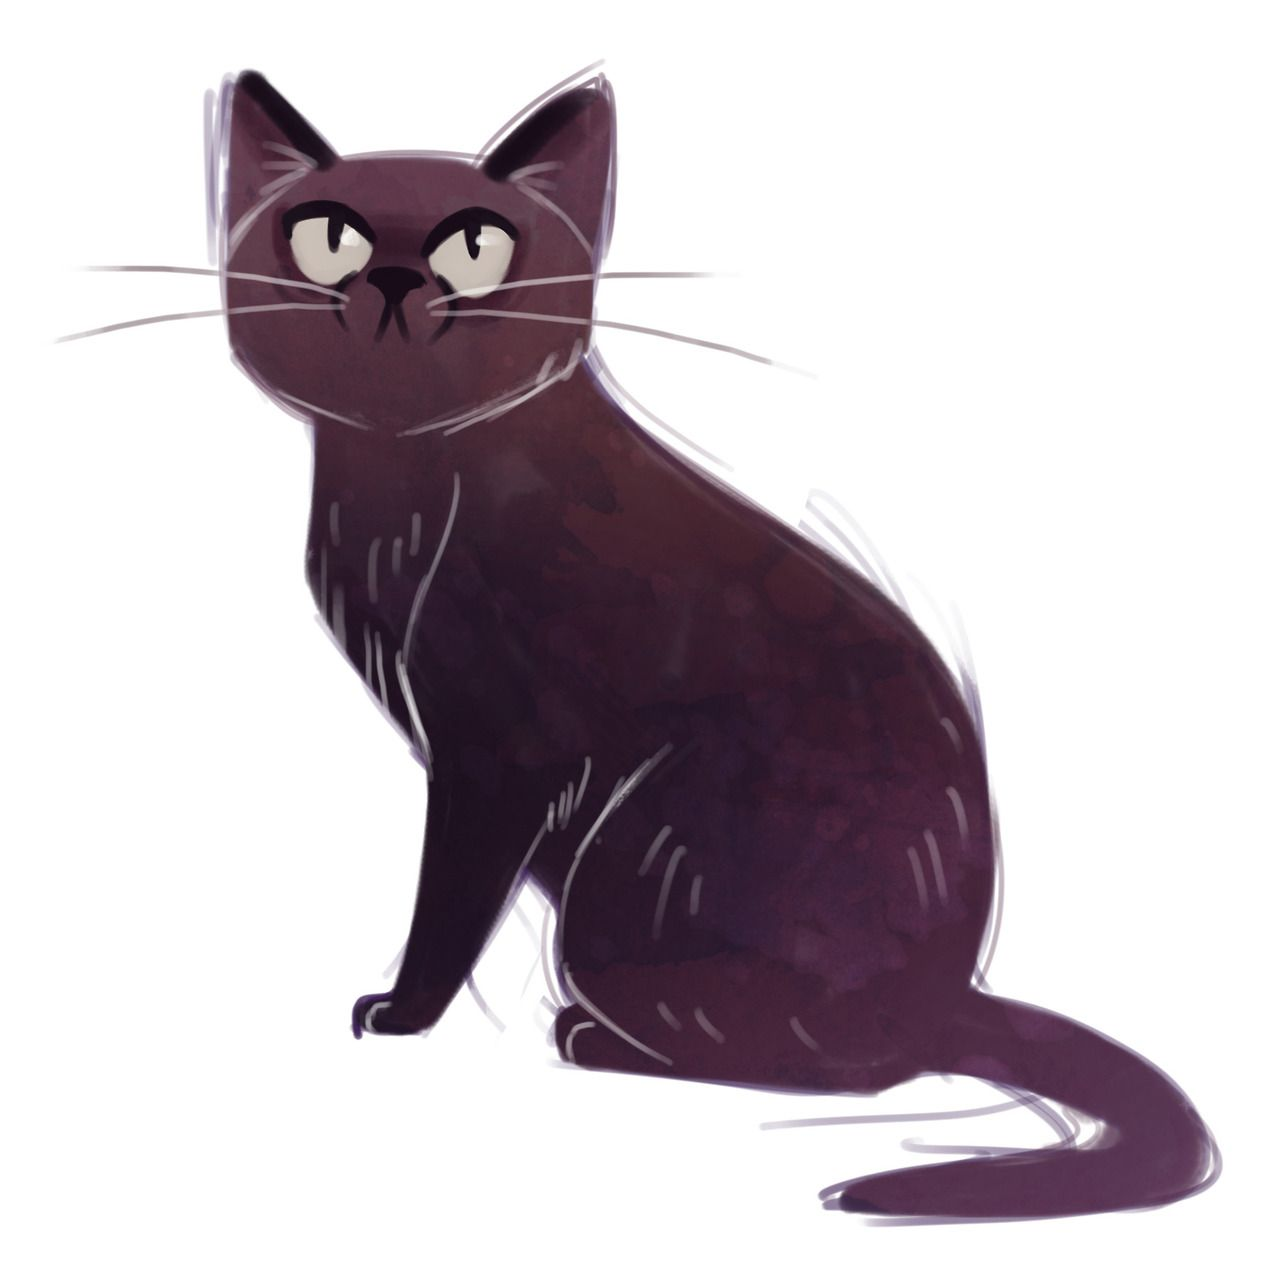 Daily Cat Drawings Your Daily Cat Illustration Fix Cats Illustration Cat Illustration Cat Drawing